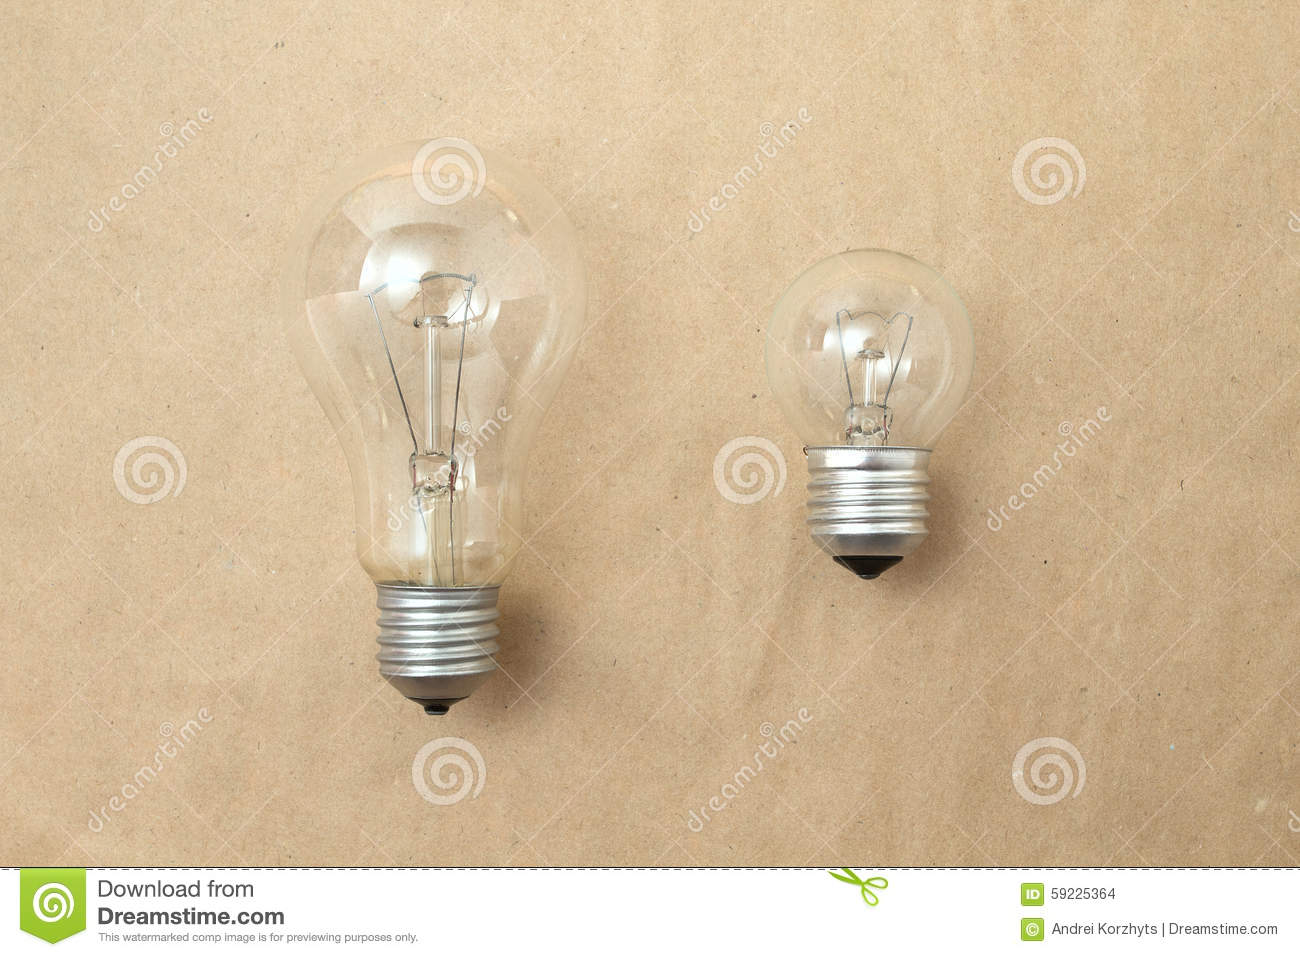 small other comparison bulb sized bulbs edit now photo business or coaching shutterstock training big medium image light and stock